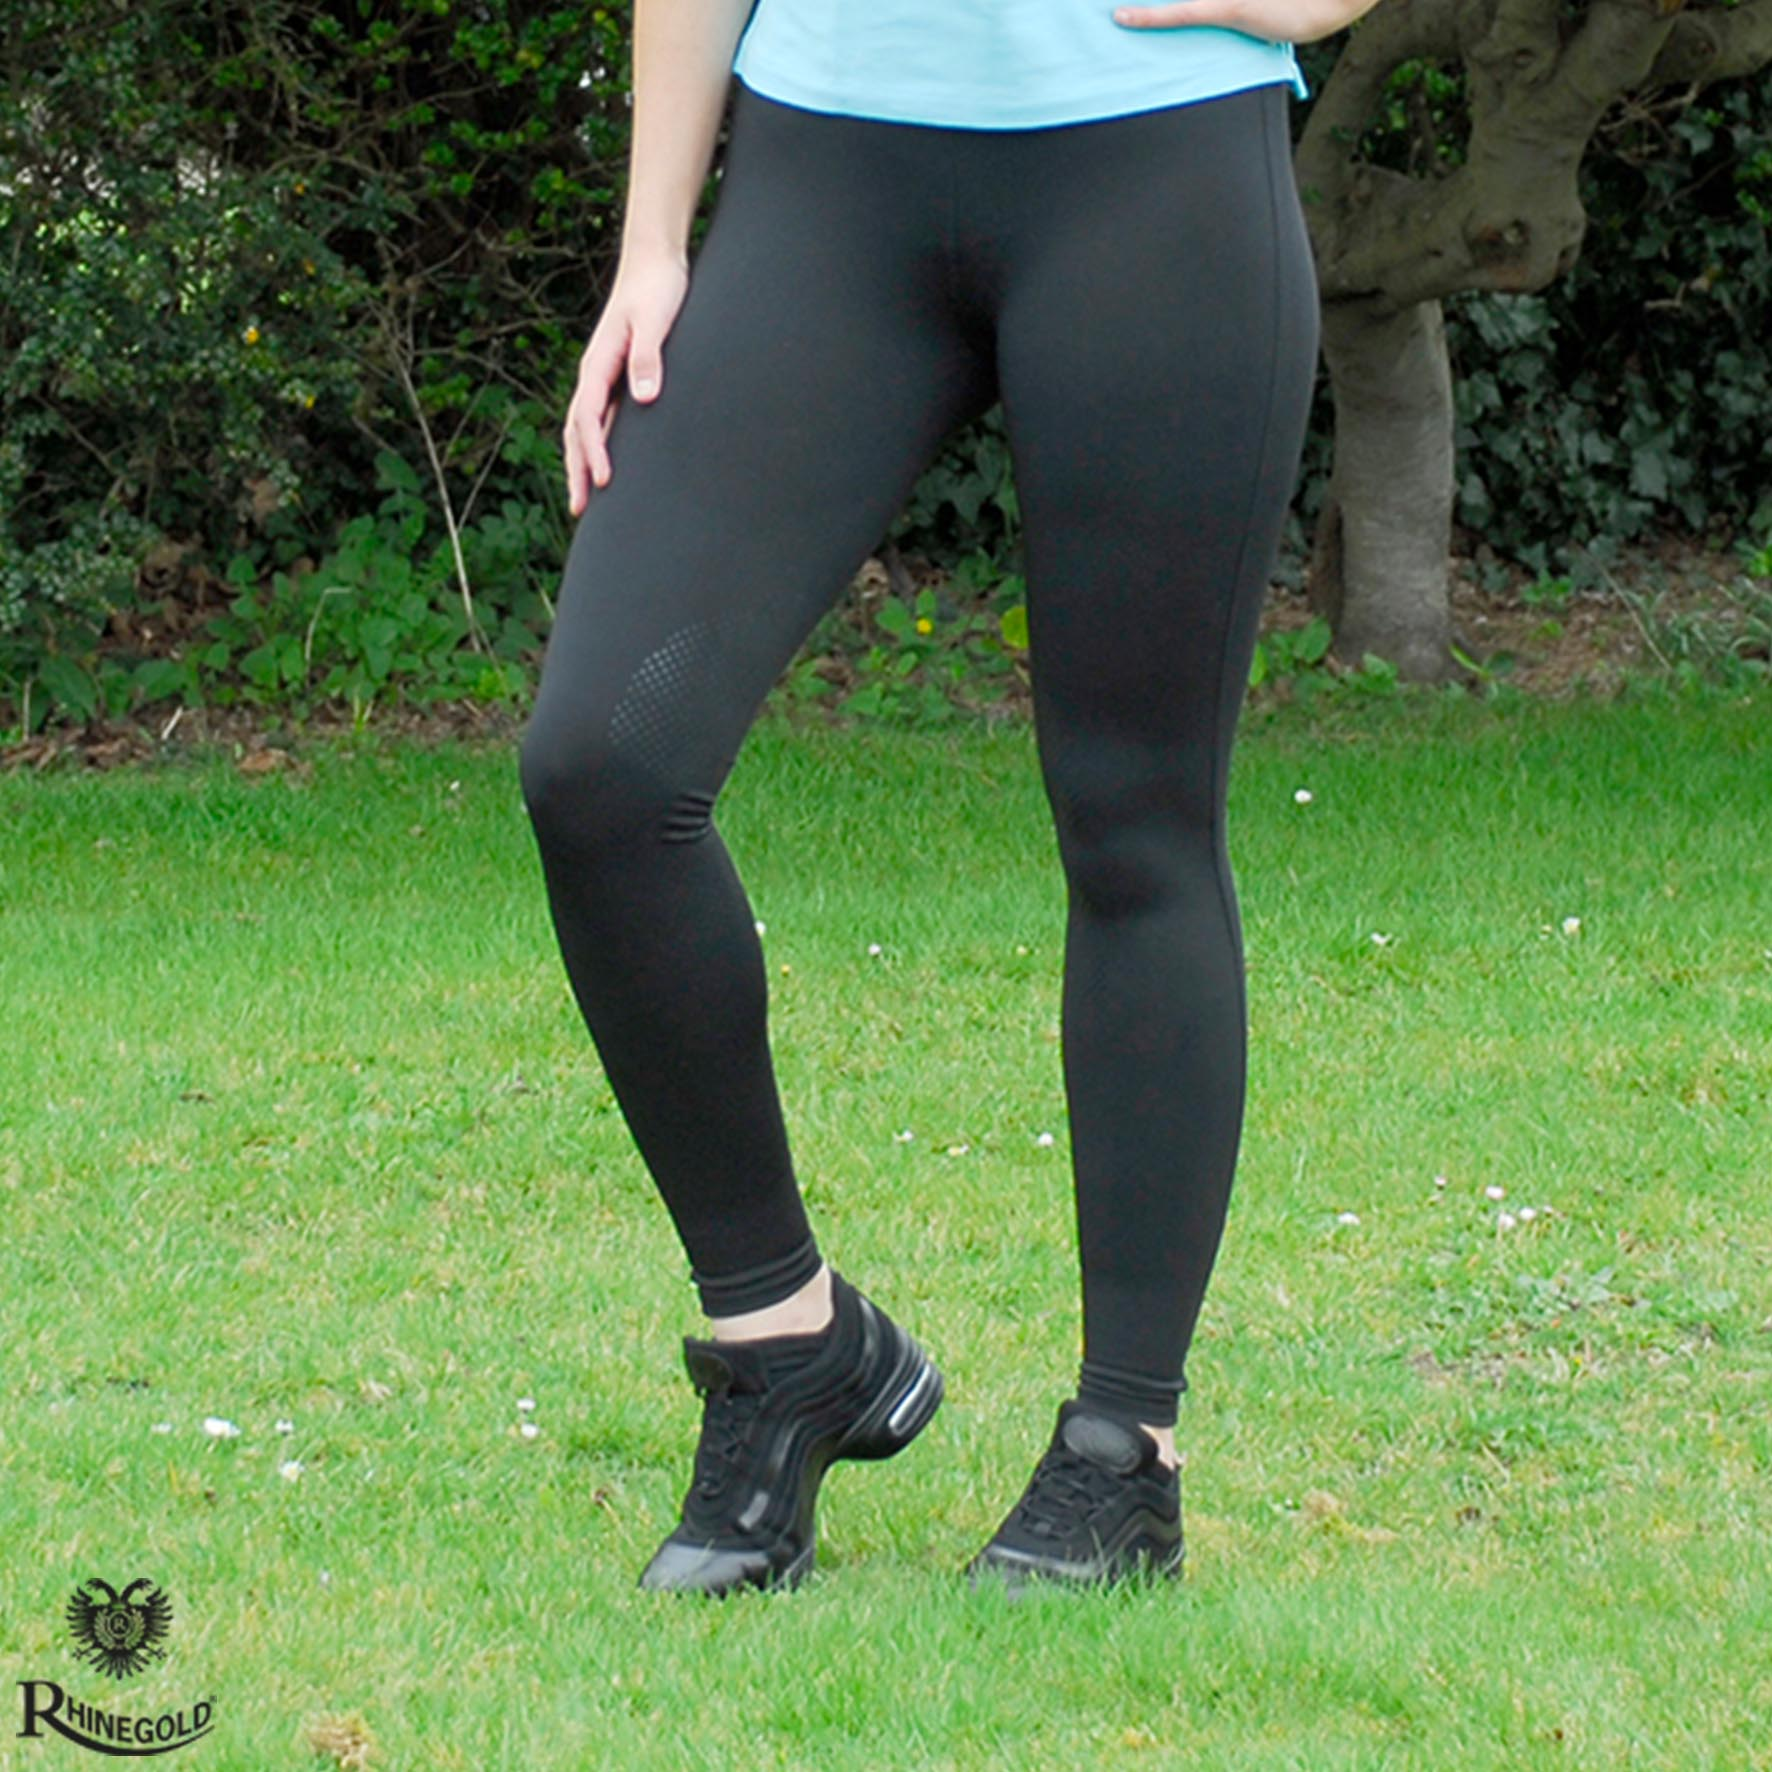 Rhinegold  Silicone Knee Performance Tights